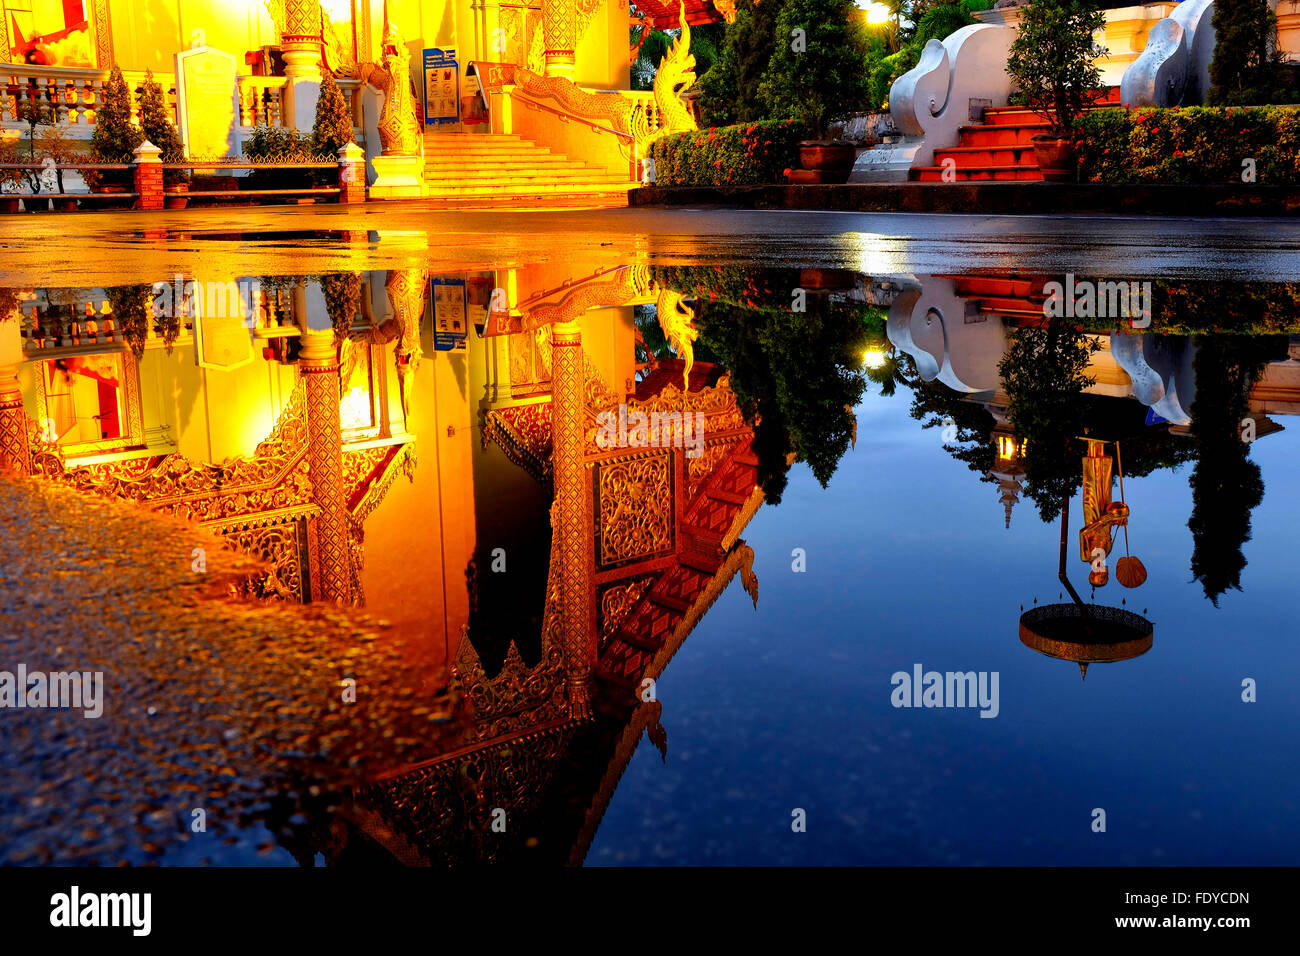 Reflection of the Wihan Luang of Wat Phra Singh in the water of a puddle, Chiang Mai, Thailand - Stock Image